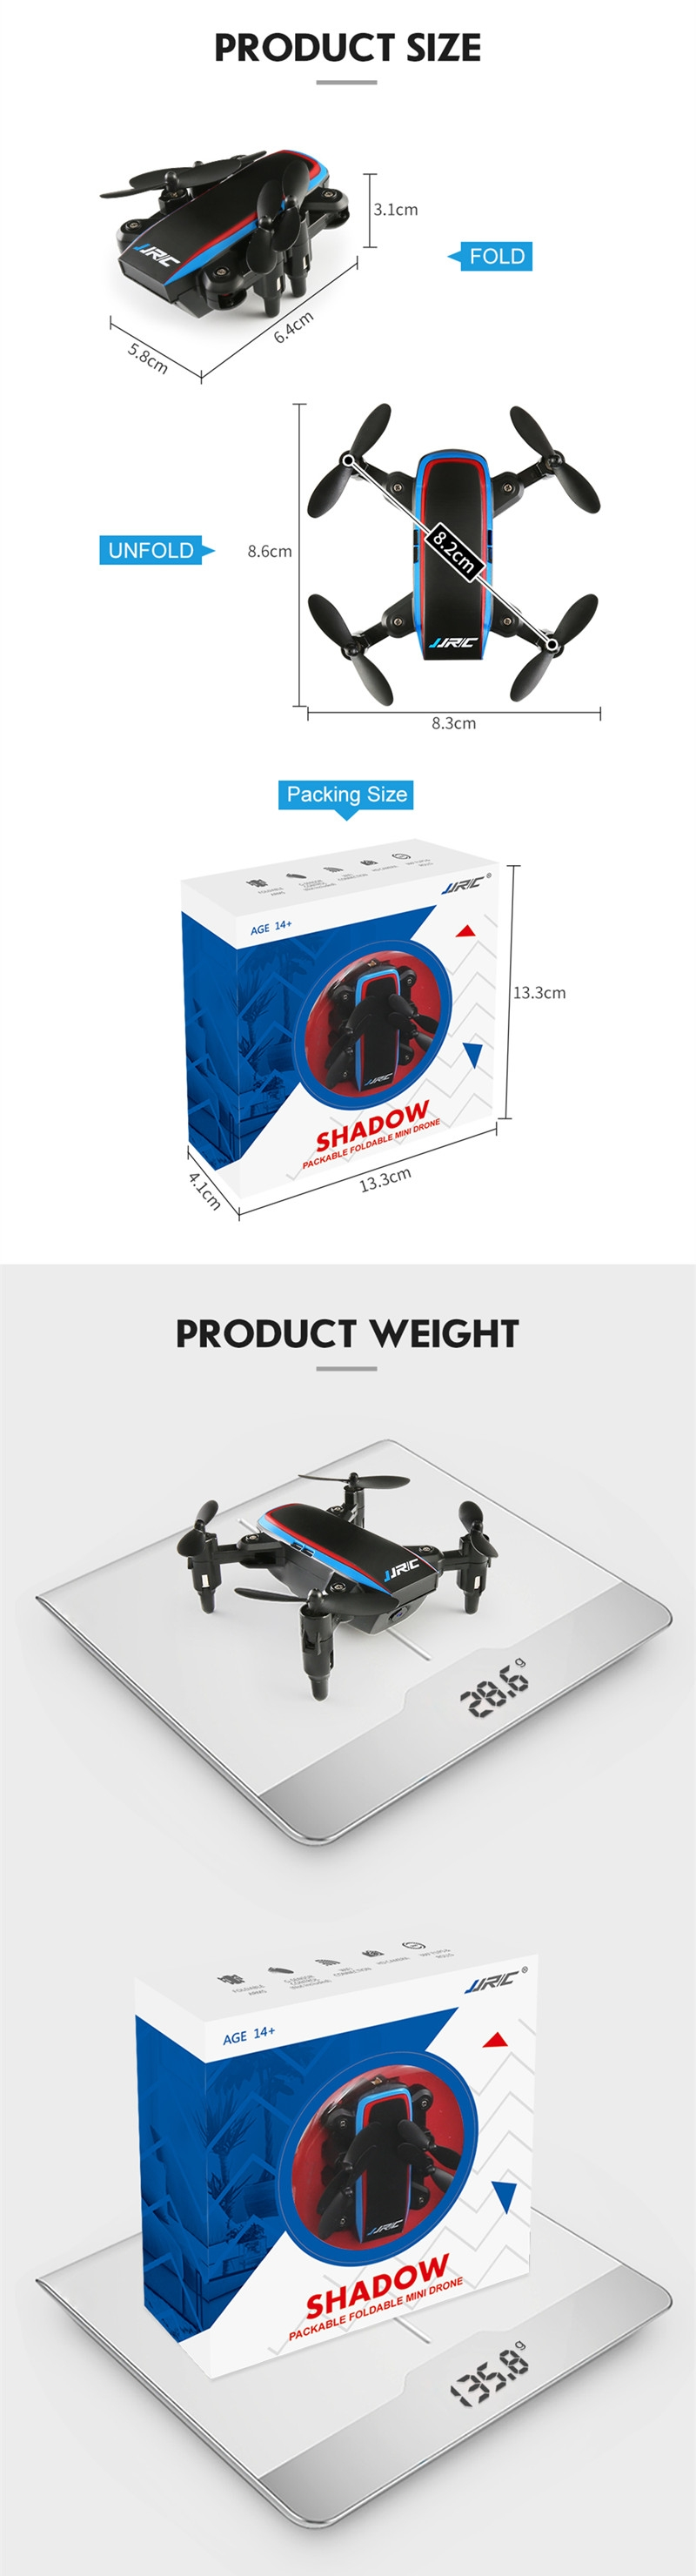 JJRC H53W Shadow WiFi FPV Foldable Mini Drone With 480P Camera Altitude Hold Mode RC Quadcopter BNF